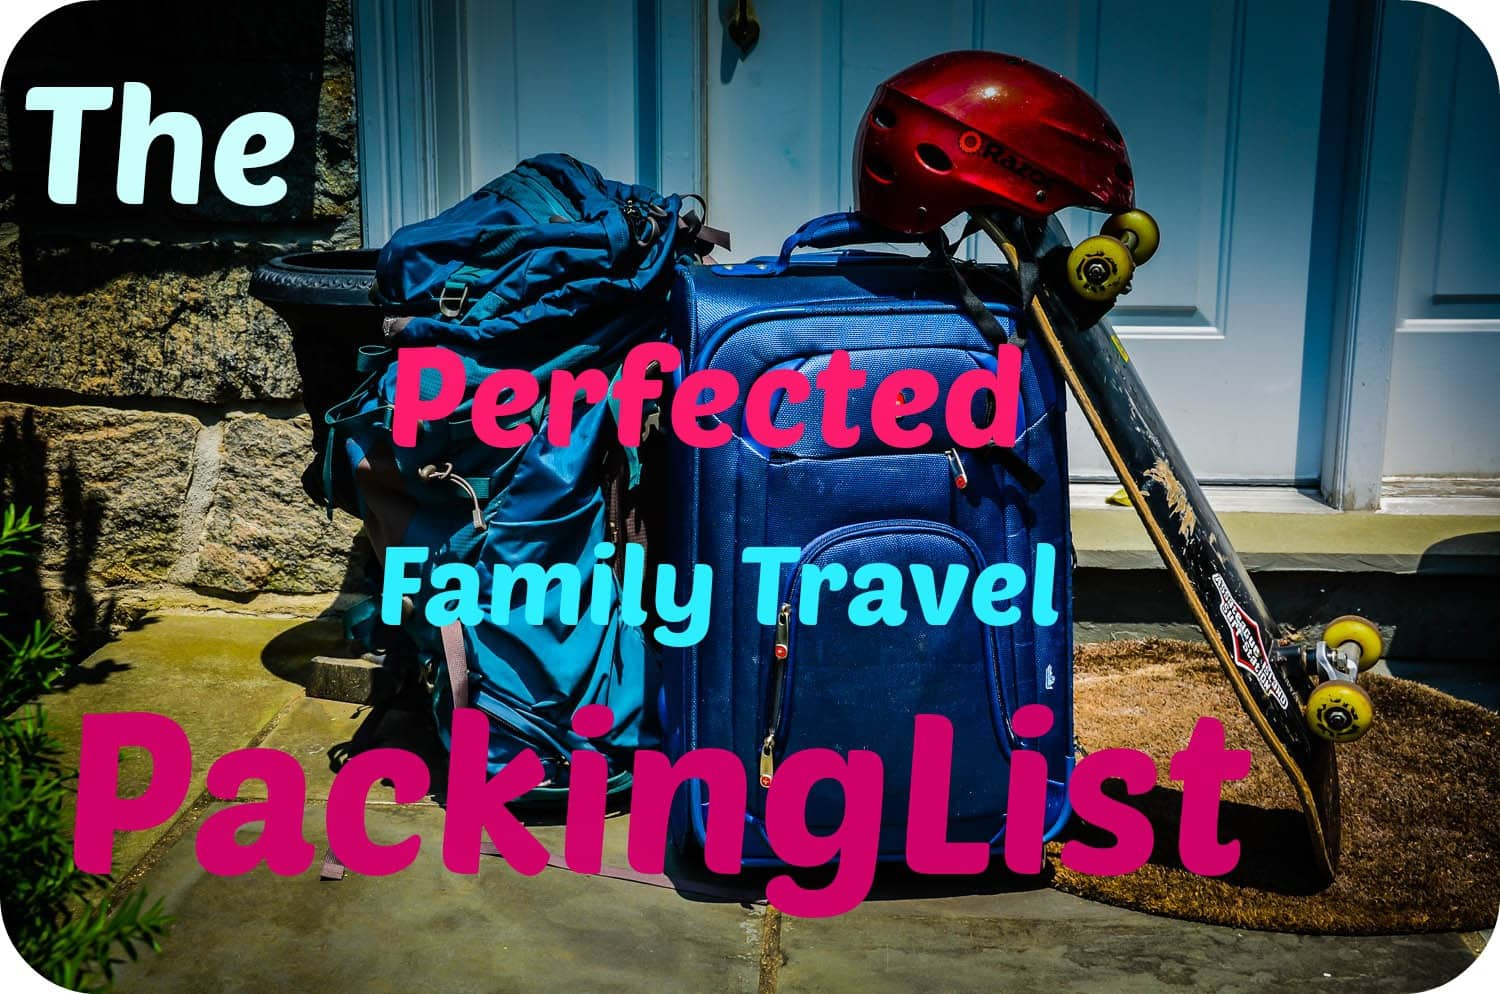 The Perfected Family Travel Packing List